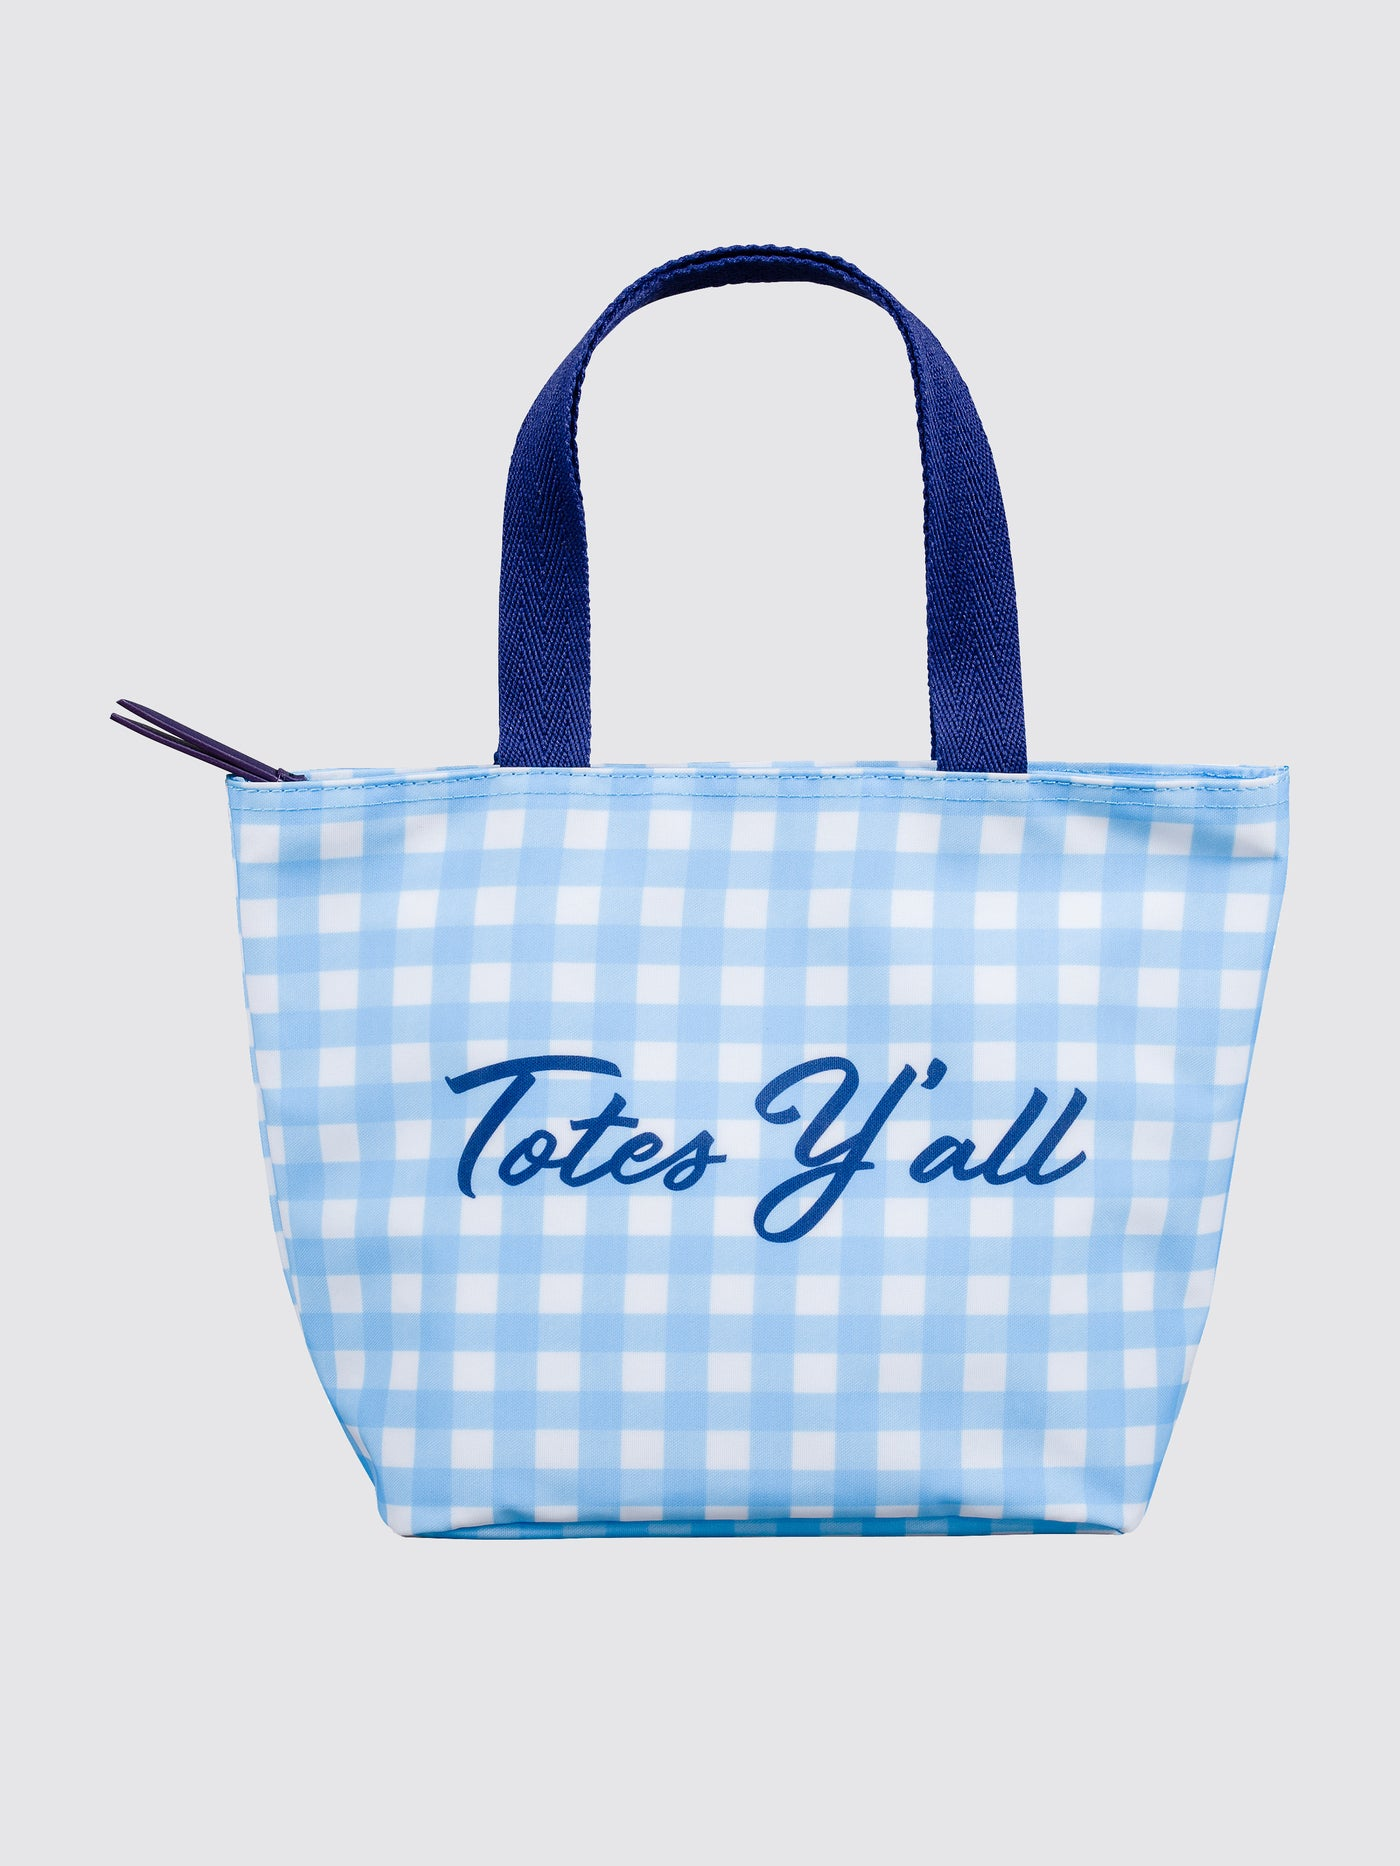 bfa33a6606 Totes Y'all Gingham Lunch Tote – Draper James